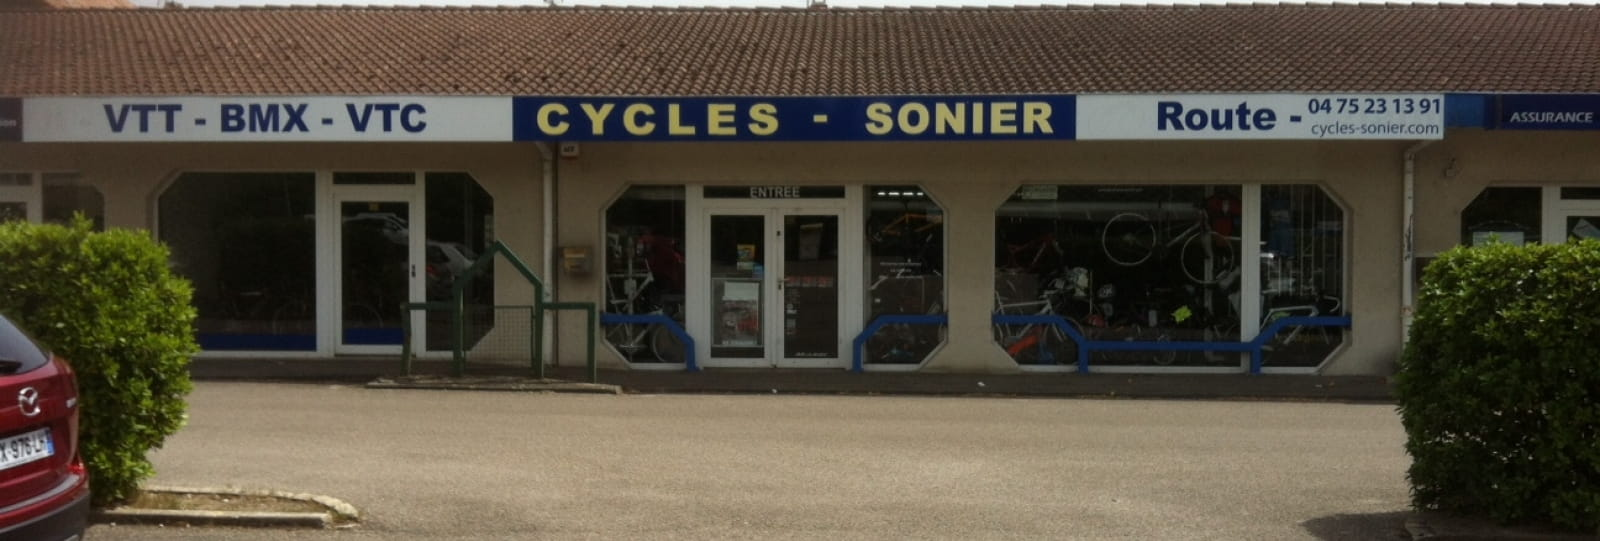 Magasin cycles sonier